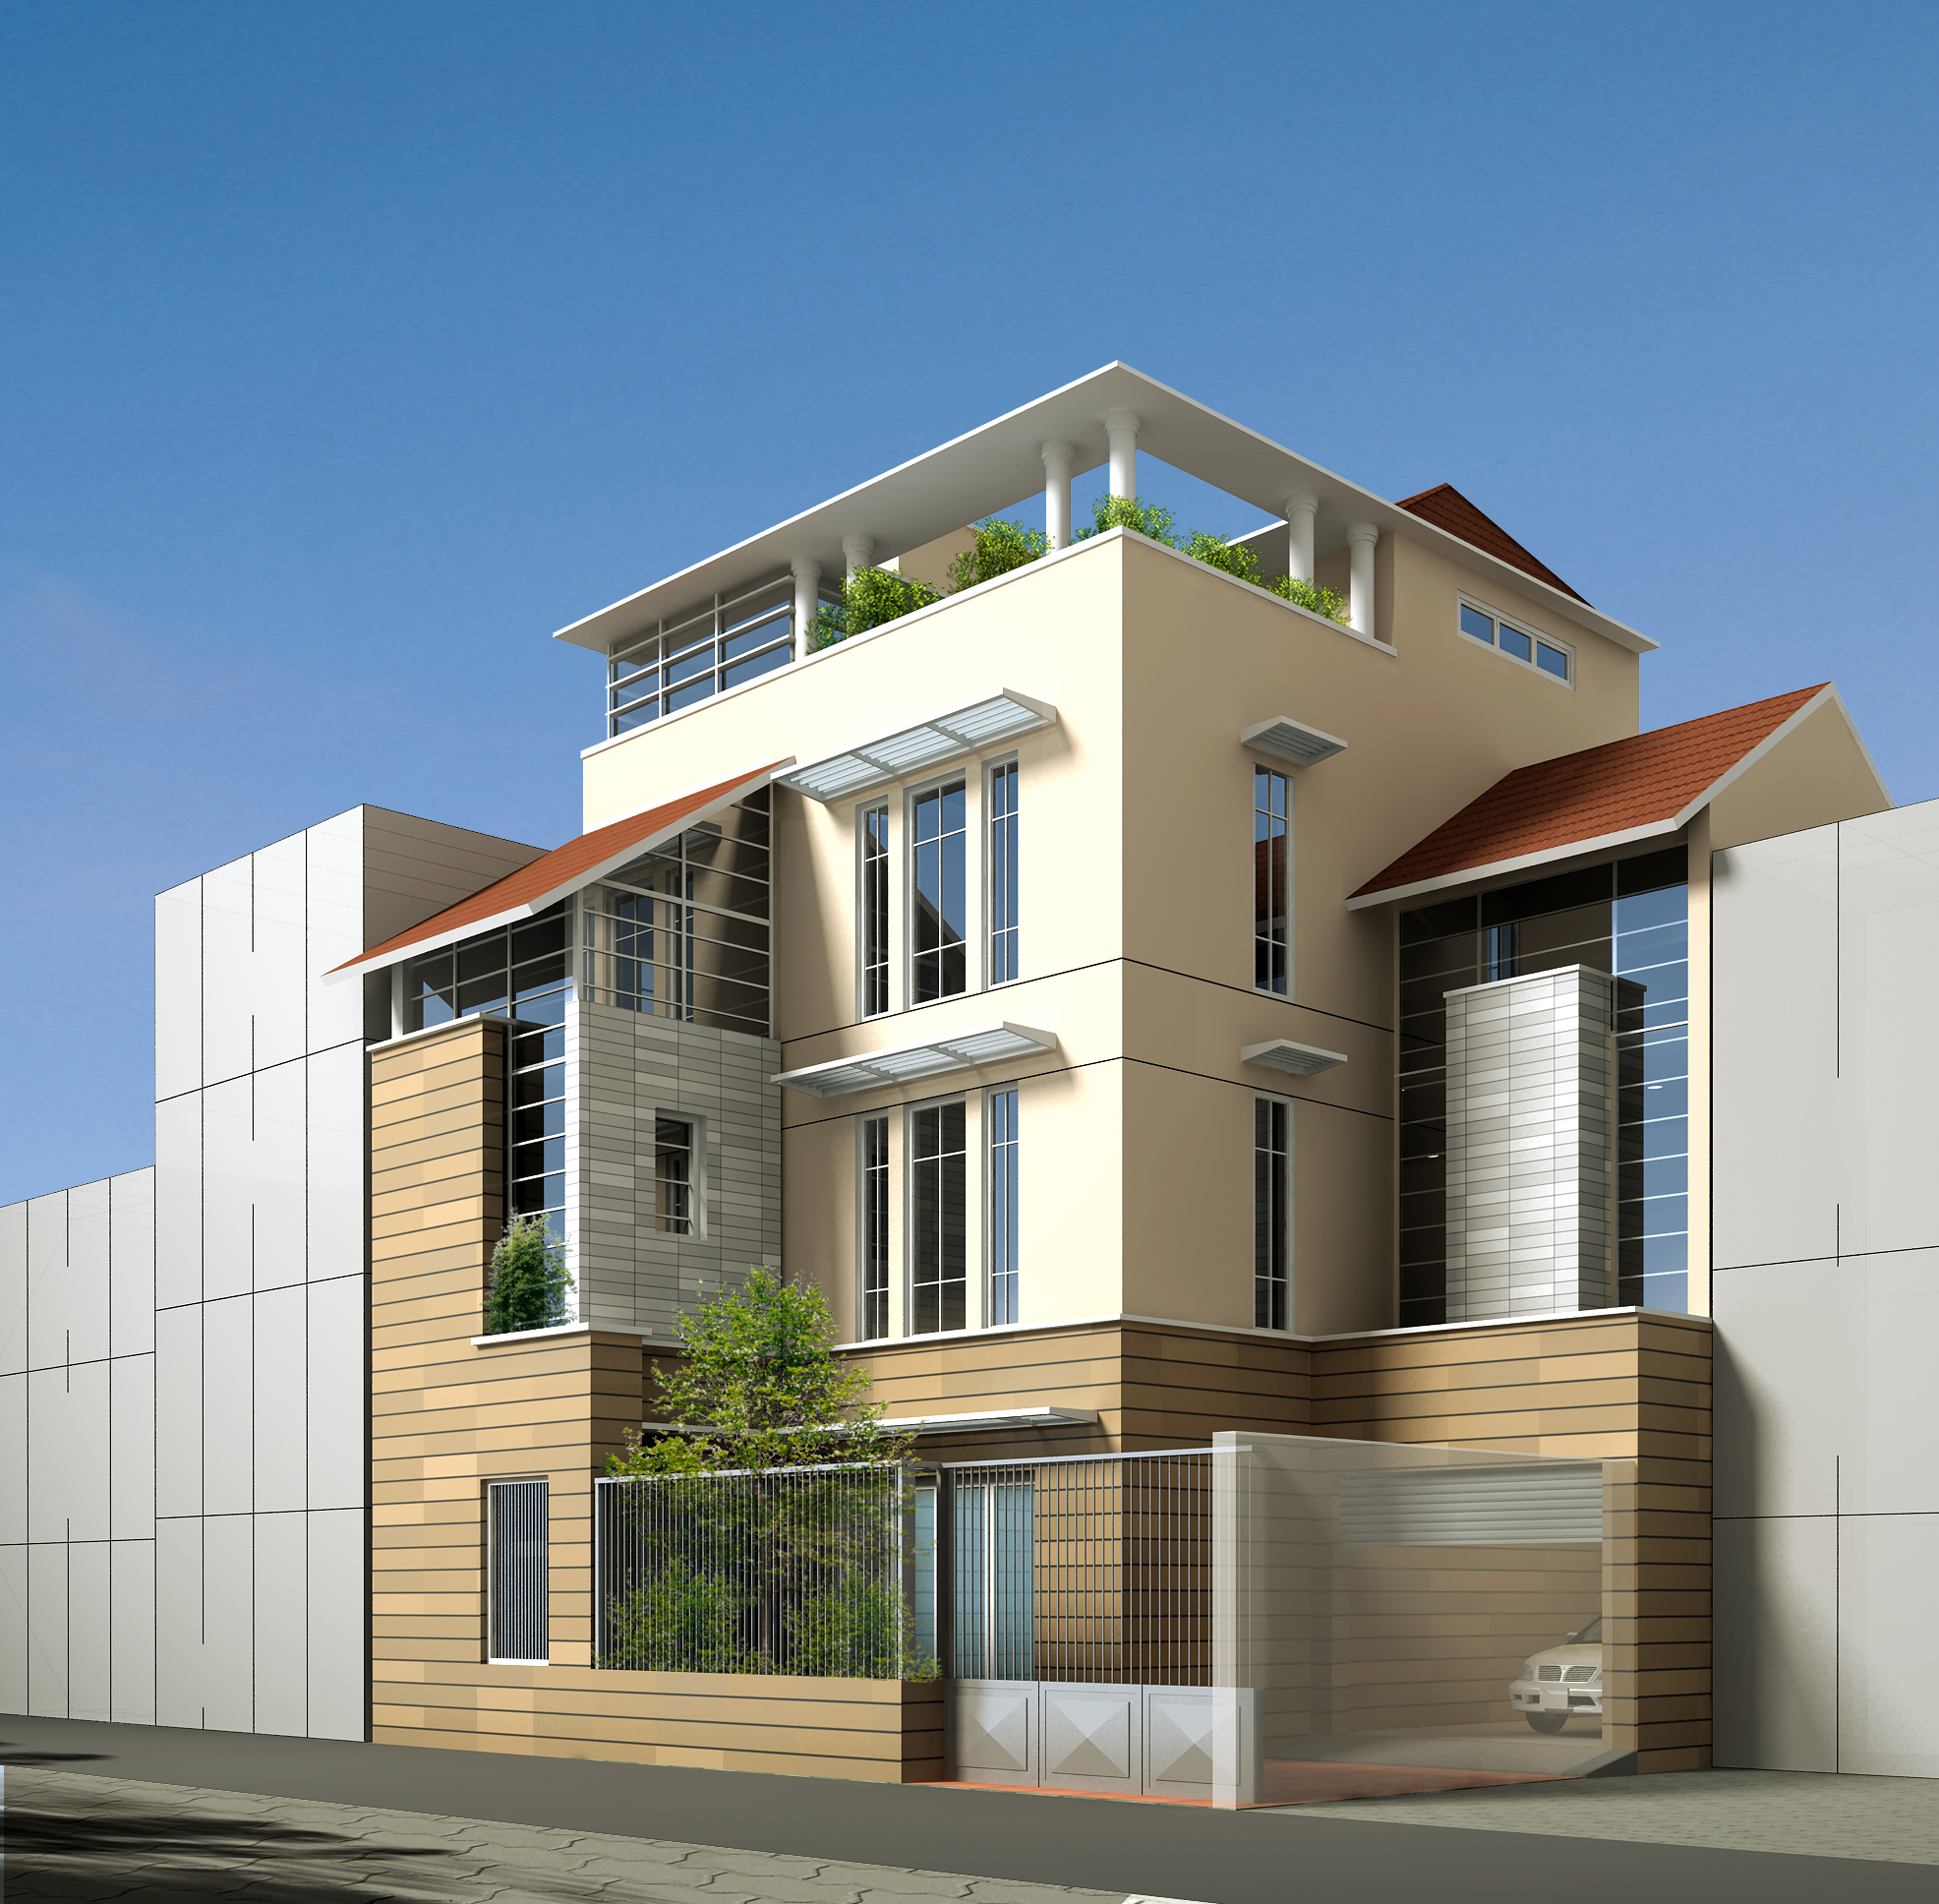 contemporary multi story house 3d model max obj 3ds mtl 1 - 3d Model Of House